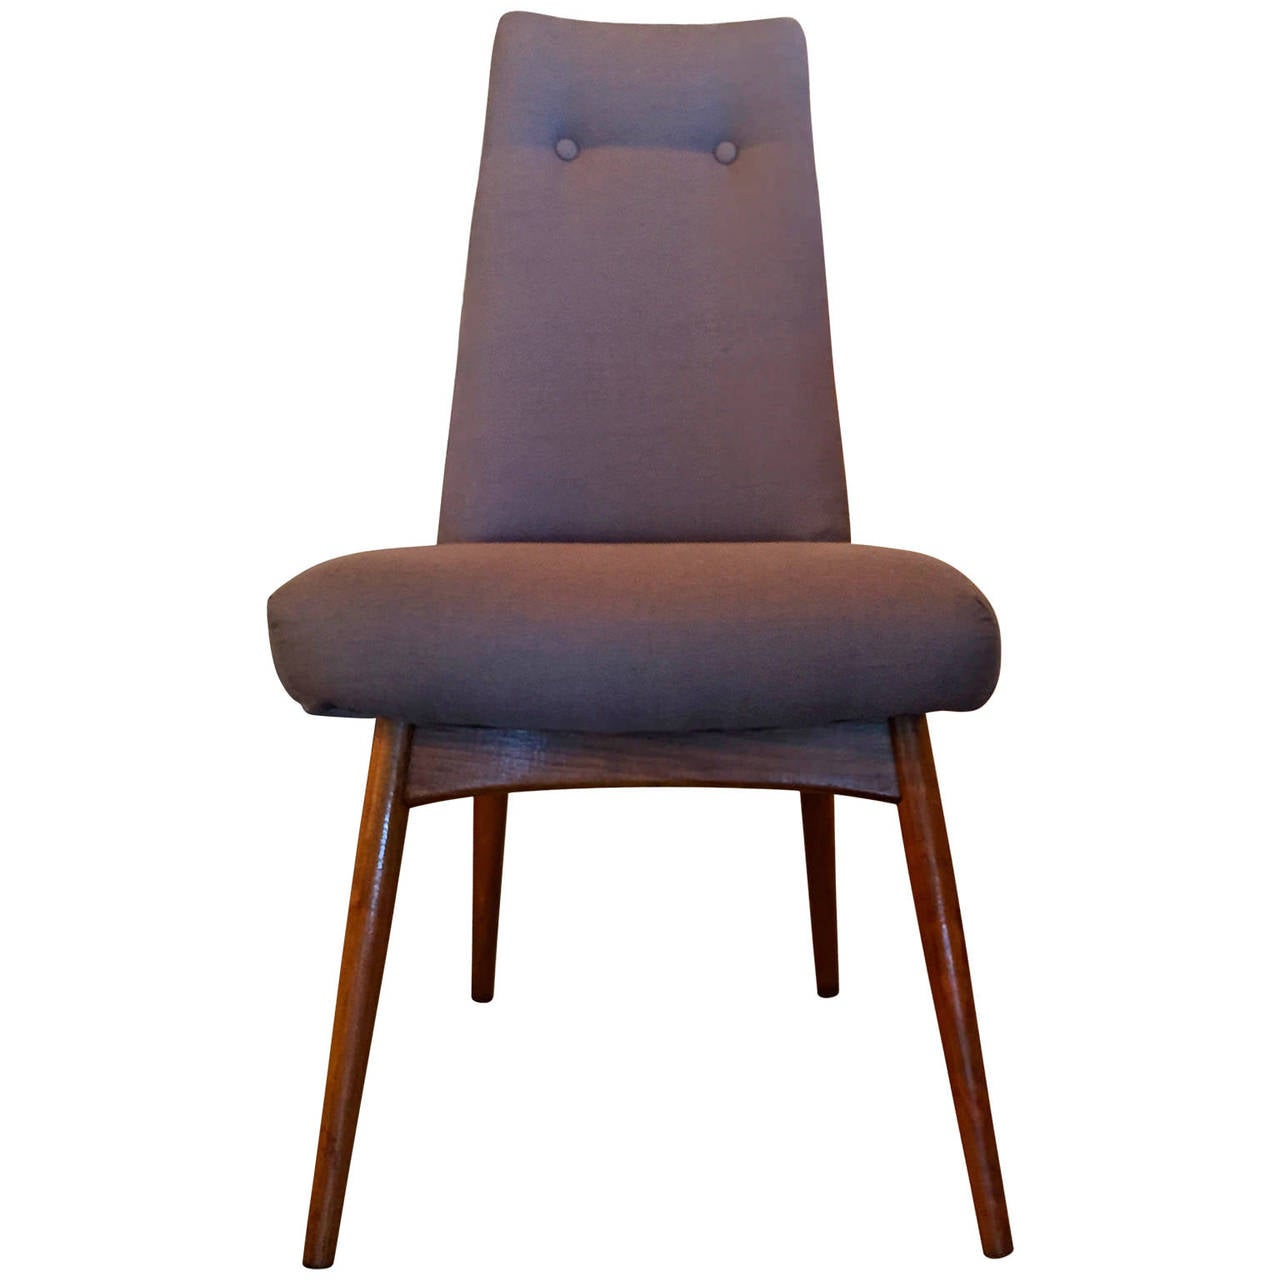 American Mid Century Modern Adrian Pearsall S/6 Walnut & Linen Dining Chairs For Sale